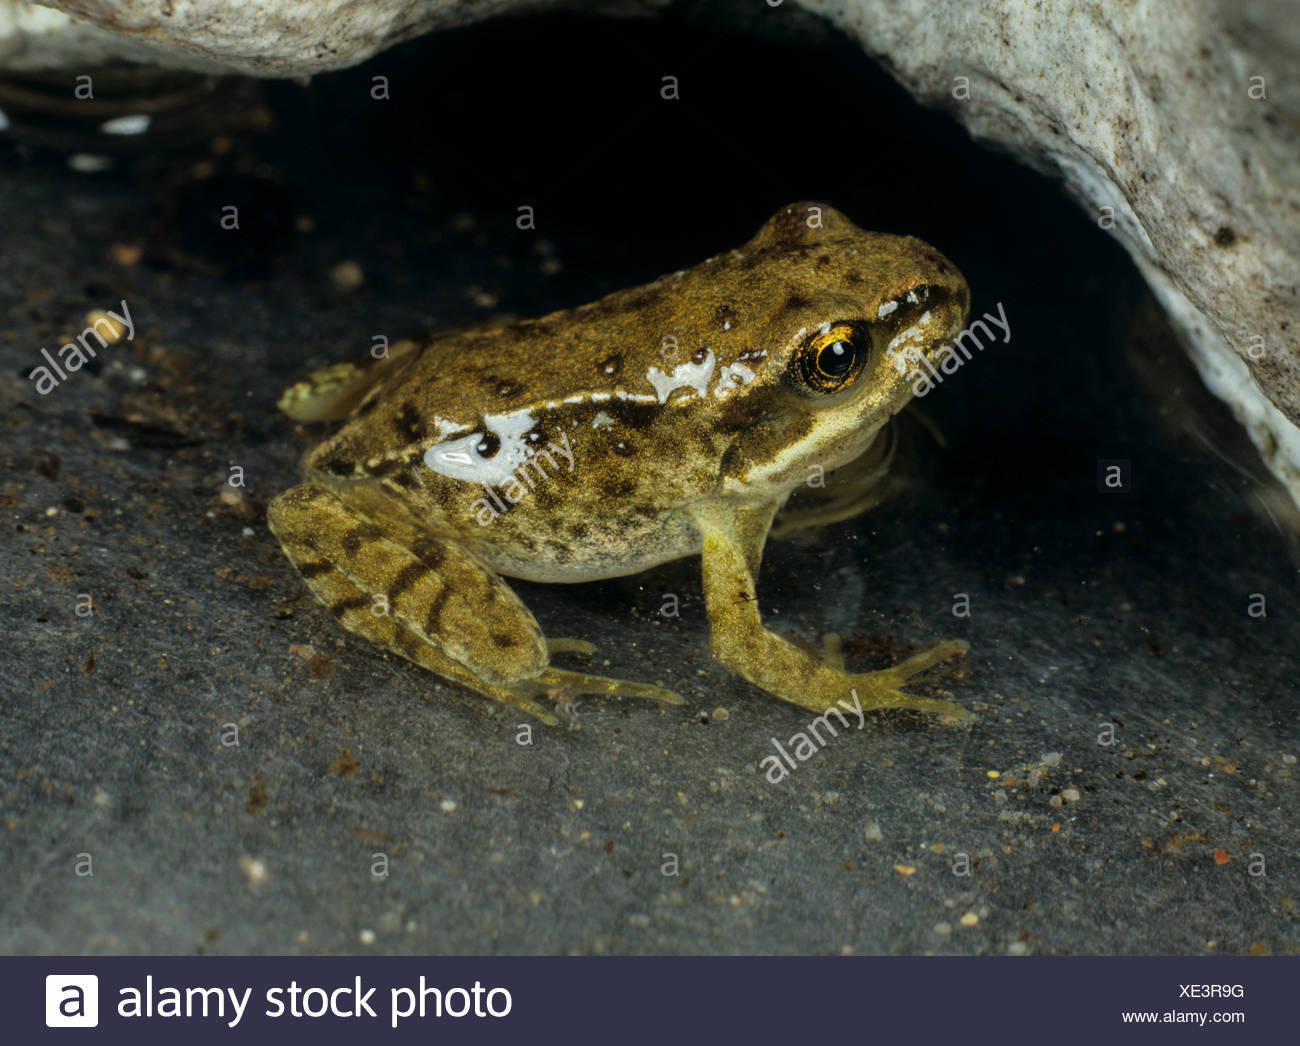 Young frog (Rana temporaria) shortly after losing its tail - Stock Image